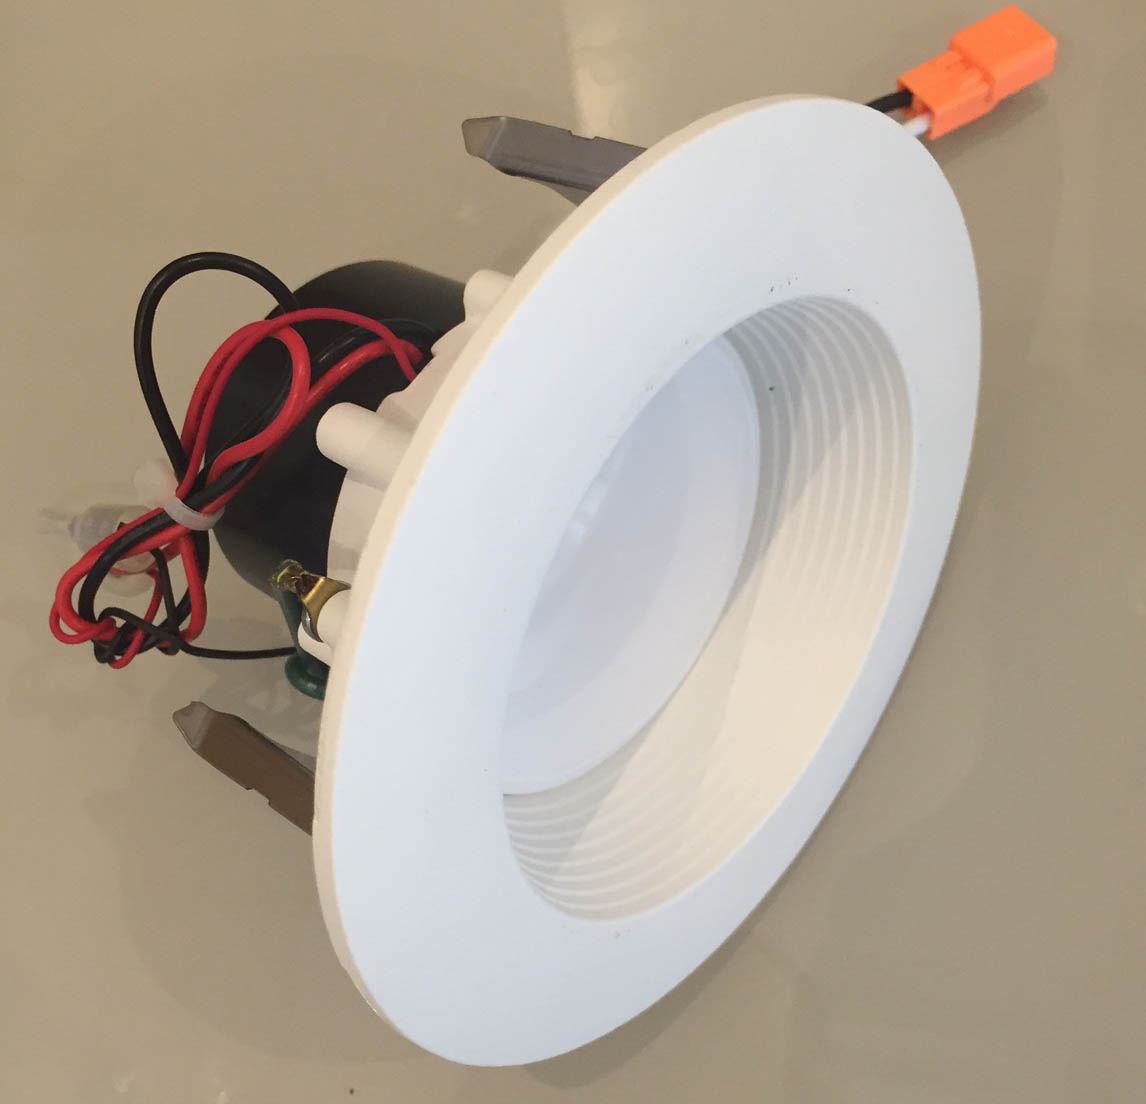 Problems with retrofit led lights and led bulbs sunlite science conventional led bulbs 6 diameter can recessed light housing mozeypictures Choice Image